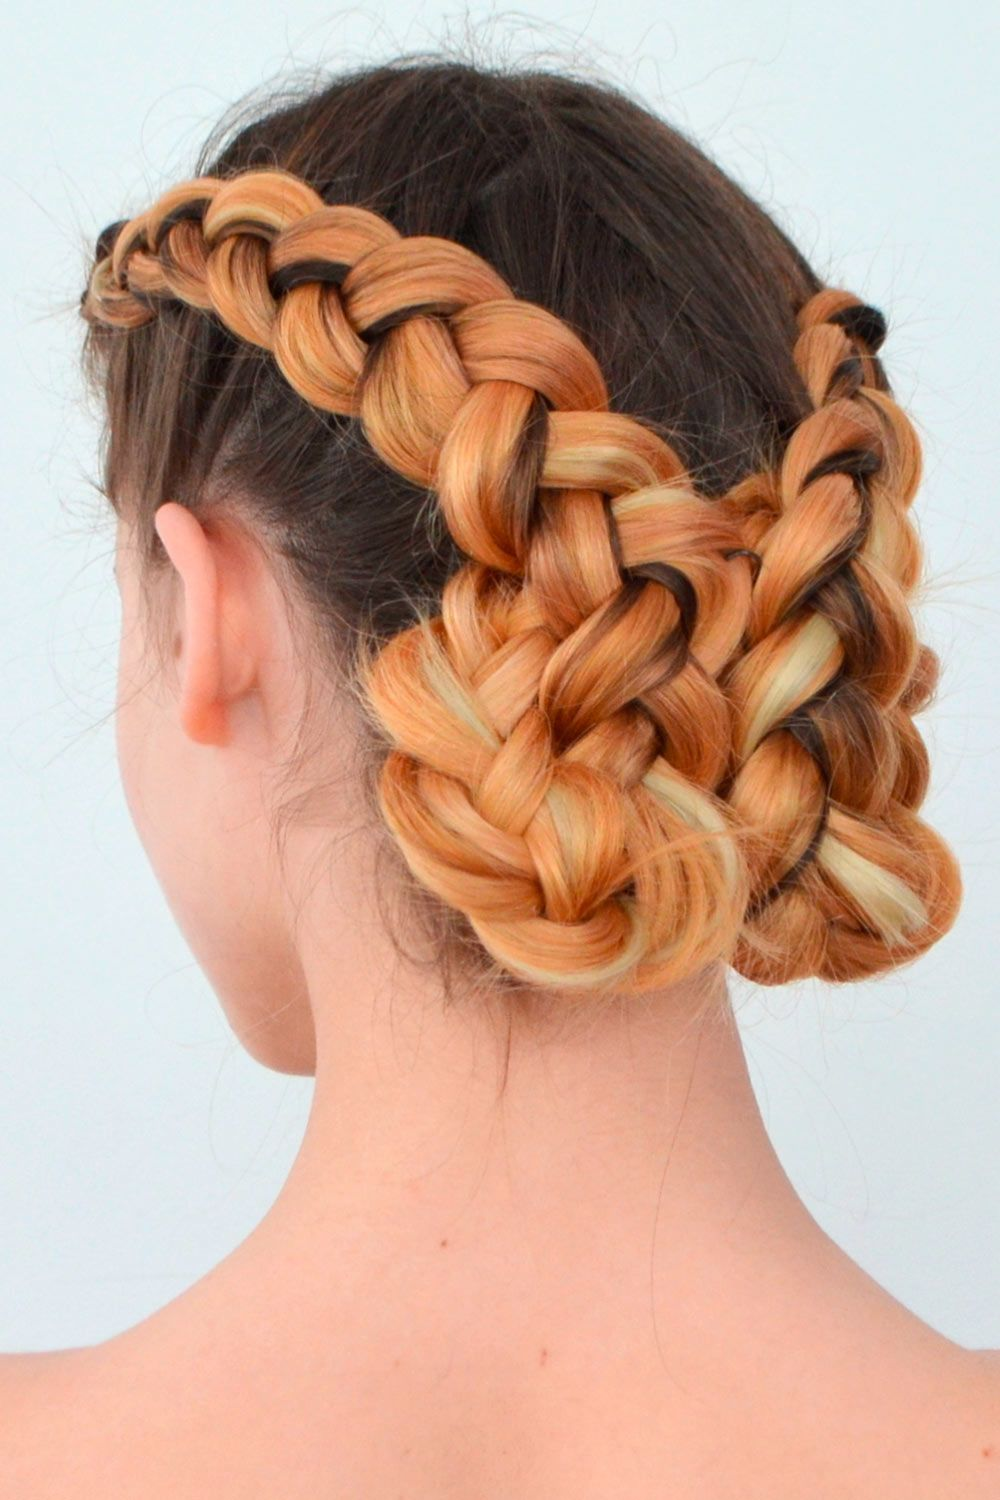 Double Braided Updo With Long Hair